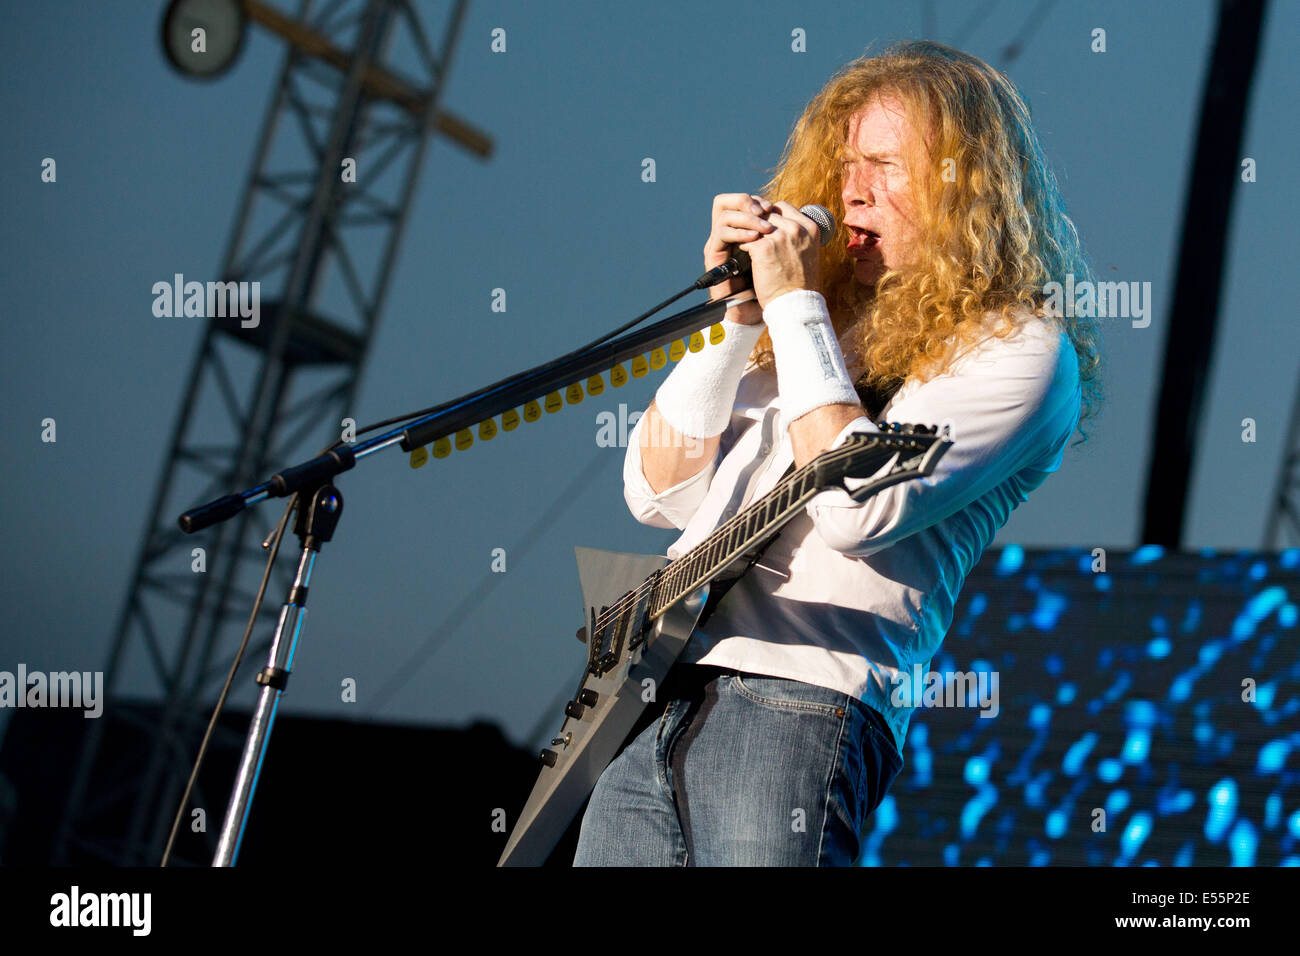 Oshkosh, Wisconsin, USA. 17th July, 2014. DAVE MUSTAINE of the band ...